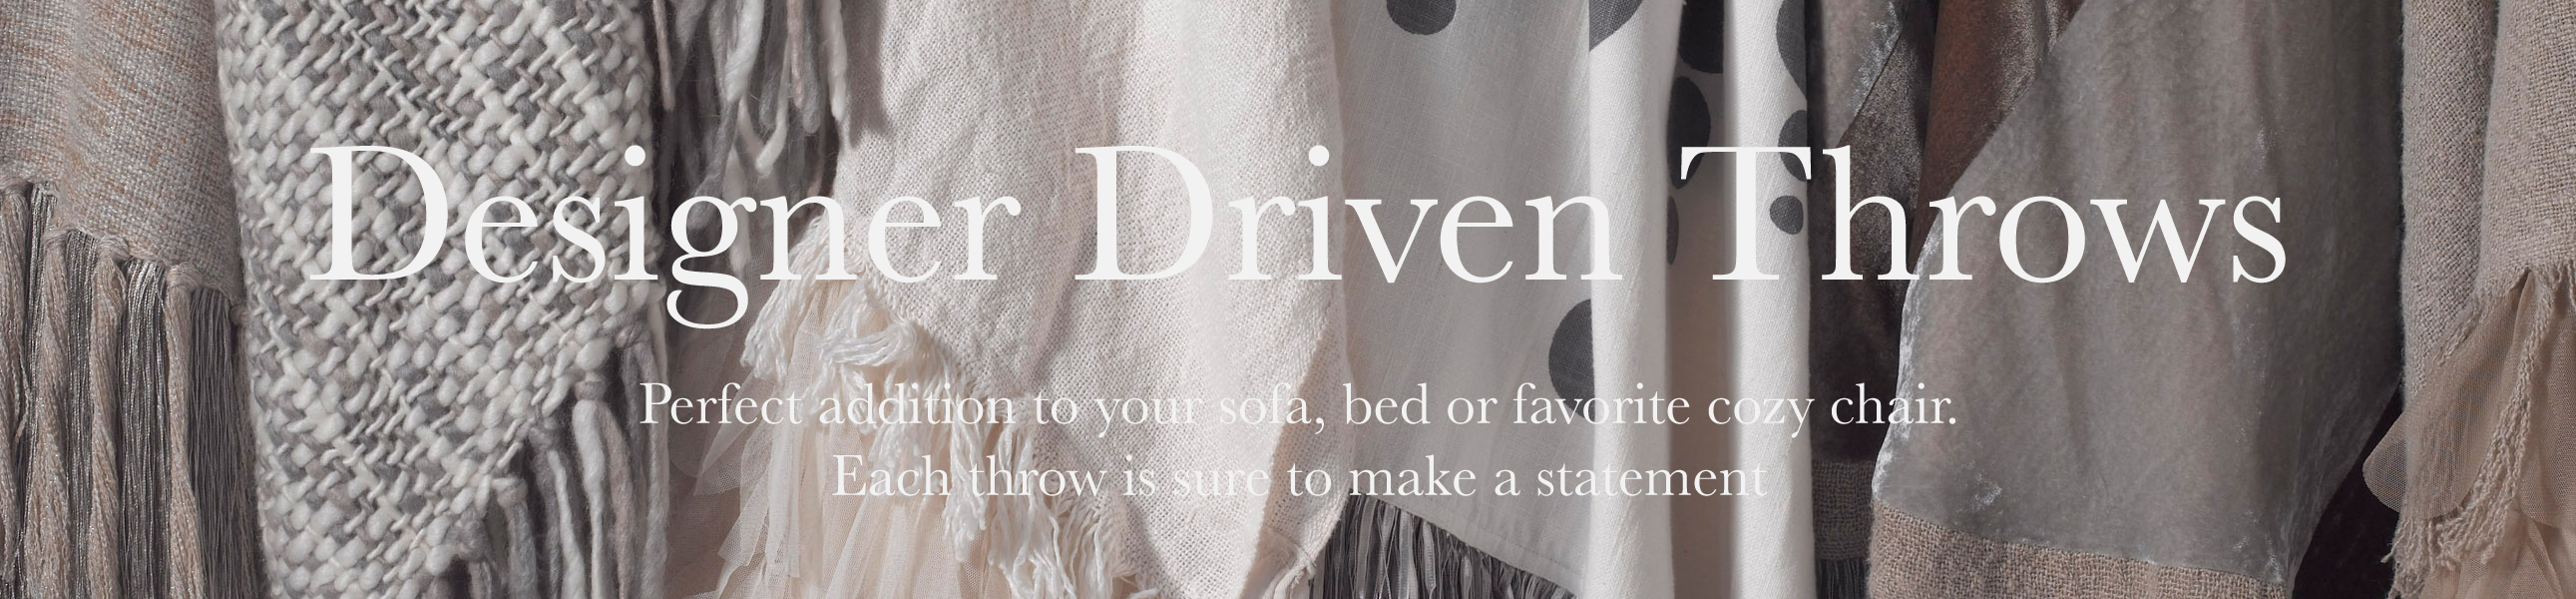 couture-dreams-throws-banner.jpg